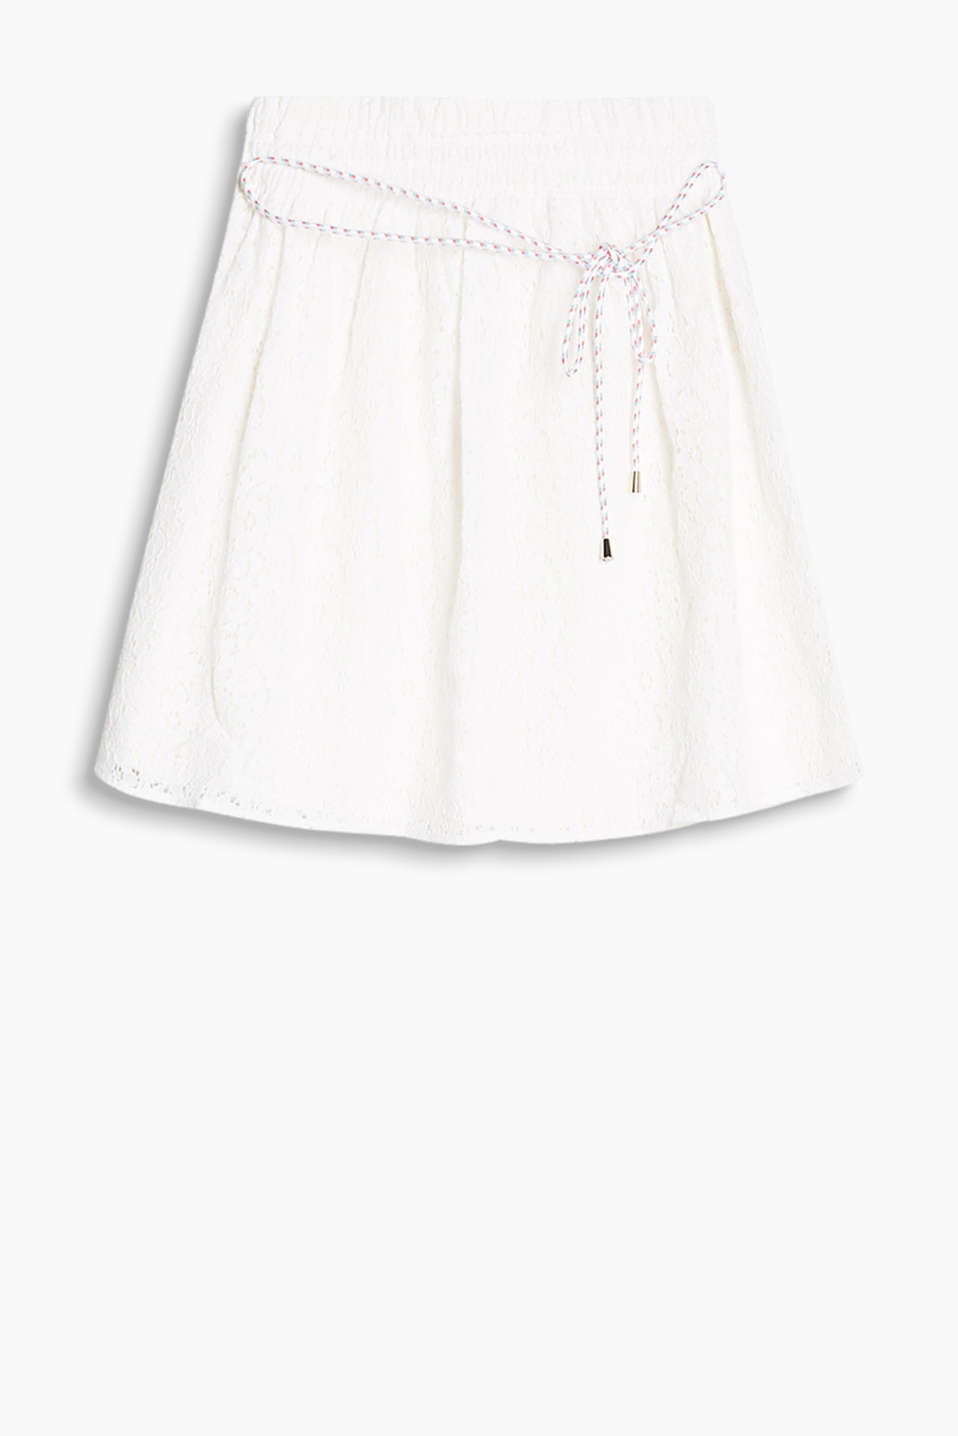 Flared, delicate lace skirt with an elasticated waistband and dainty cord belt